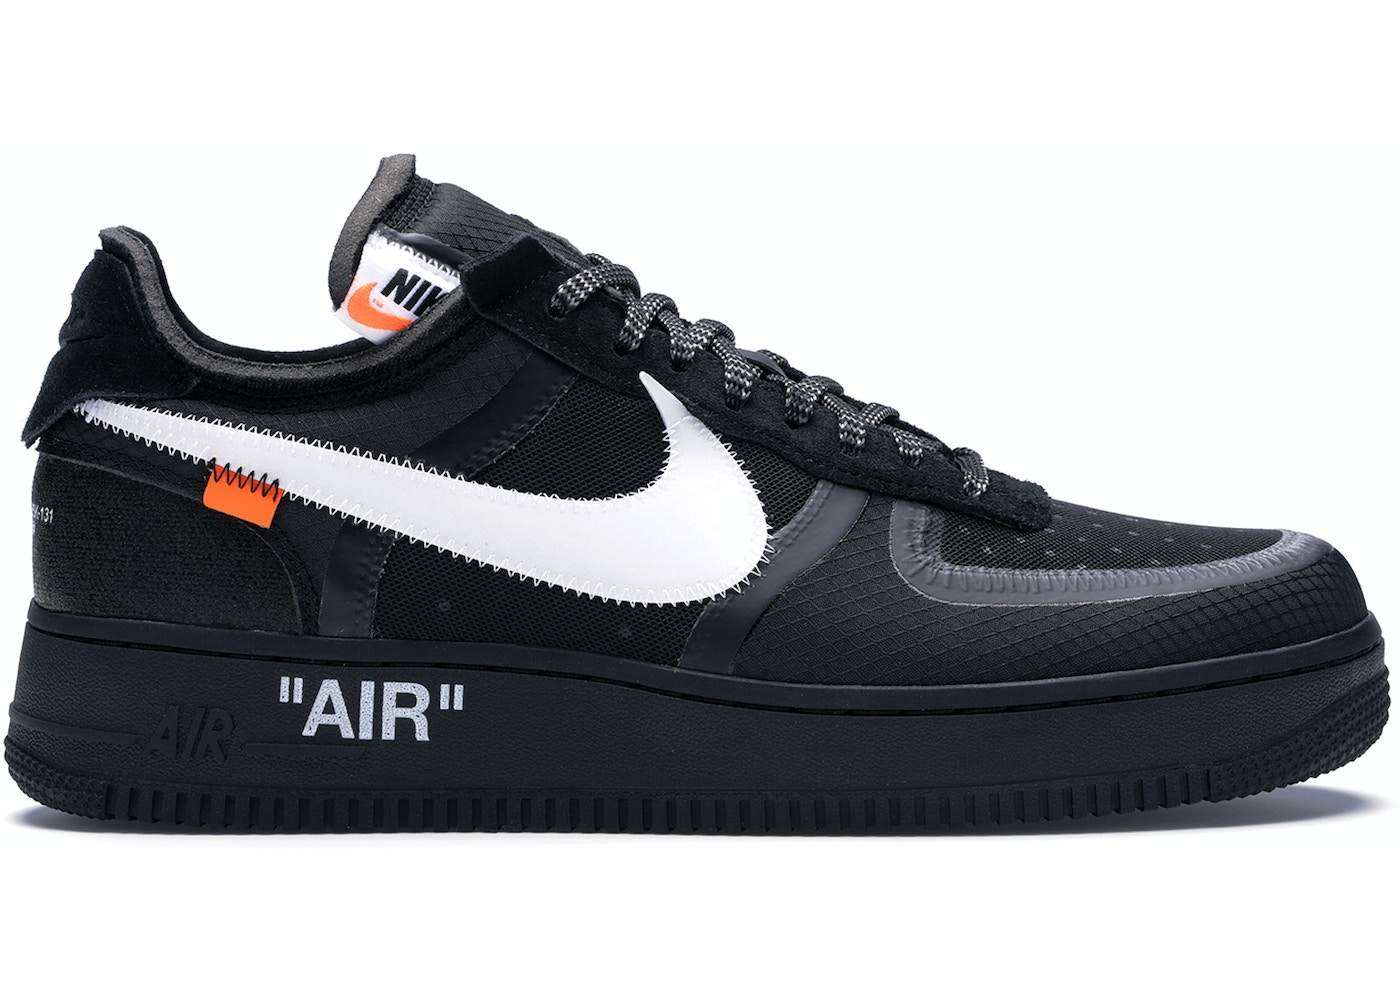 finest selection 5b1c8 fedeb Air Force 1 Low Off-White Black White